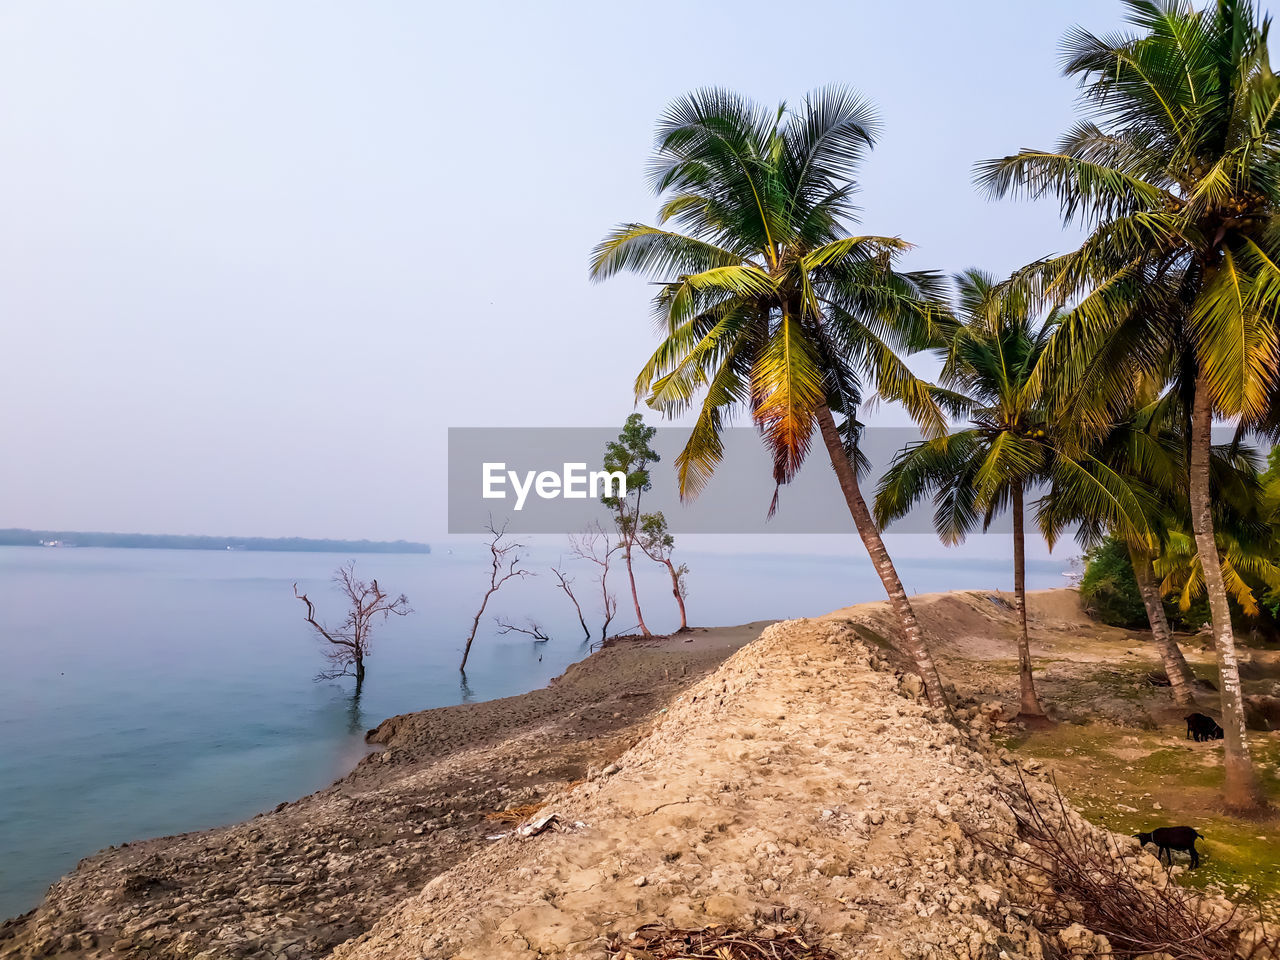 tree, sky, water, tropical climate, plant, palm tree, beauty in nature, tranquility, tranquil scene, scenics - nature, nature, sea, rock, beach, rock - object, land, solid, no people, outdoors, horizon over water, coconut palm tree